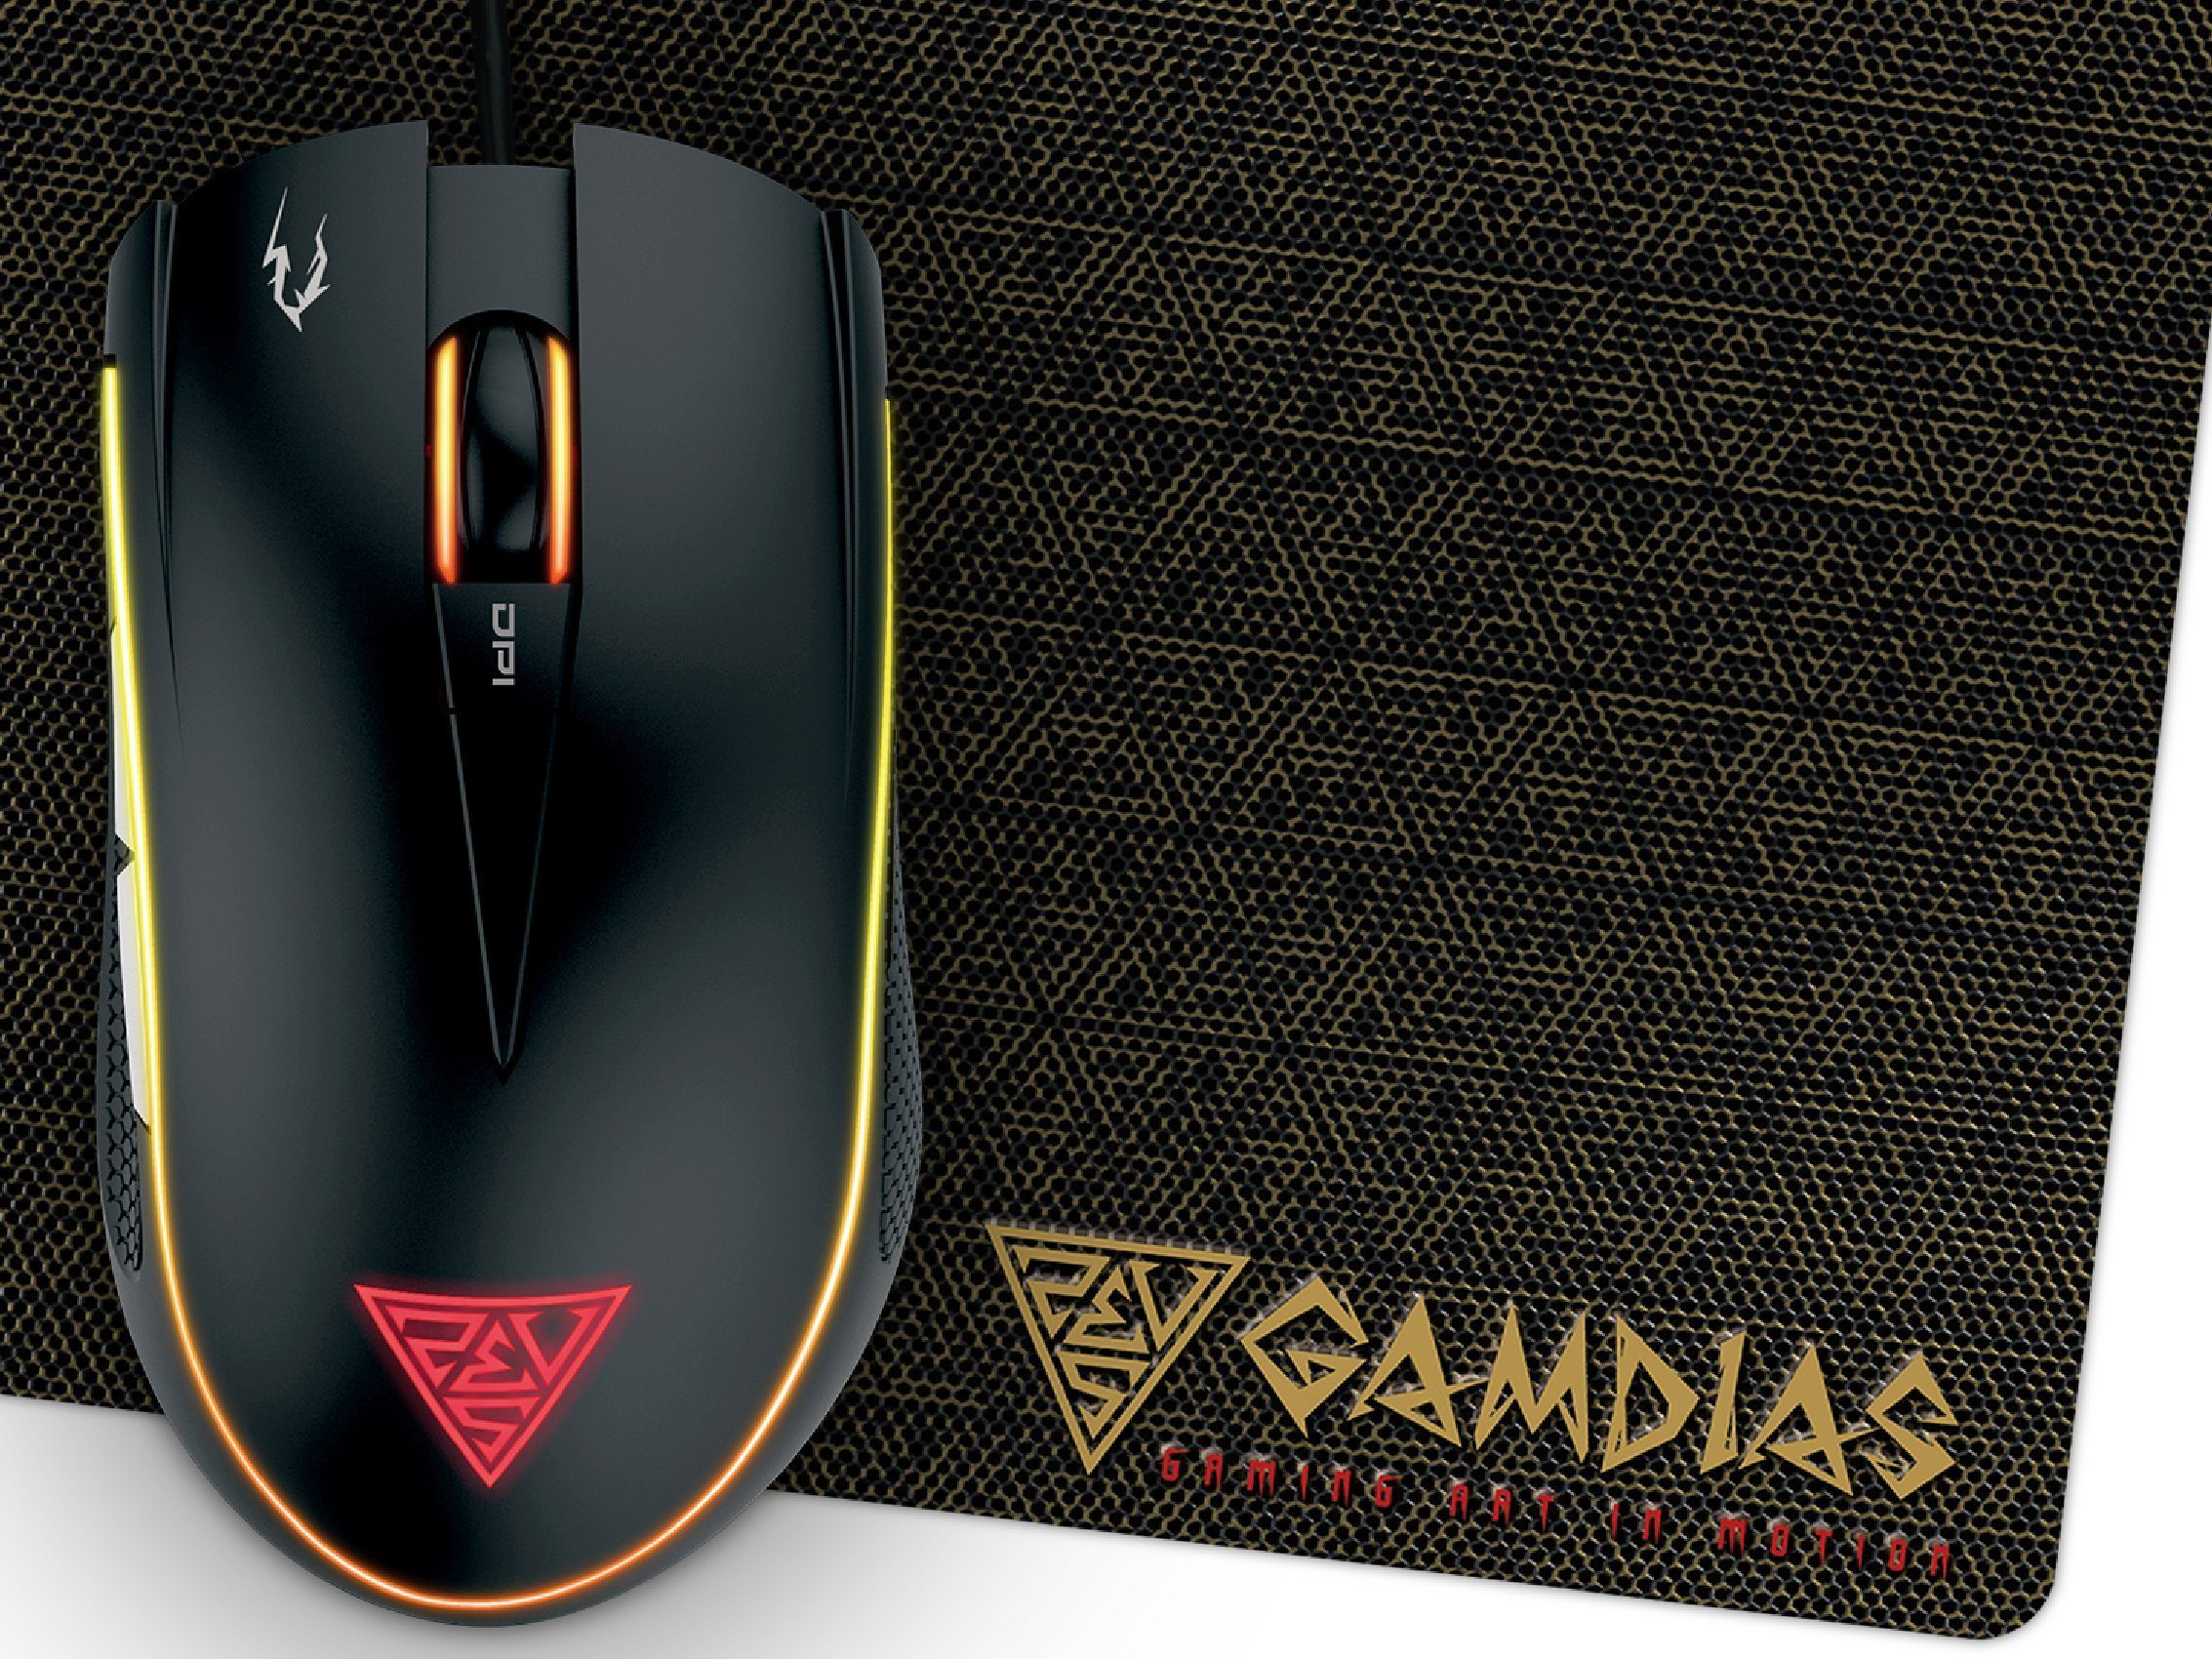 геймърска мишка с подложка Gaming Mouse - ZEUS E2 OPTICAL + PAD NYX E1 - 3200dpi, backlight